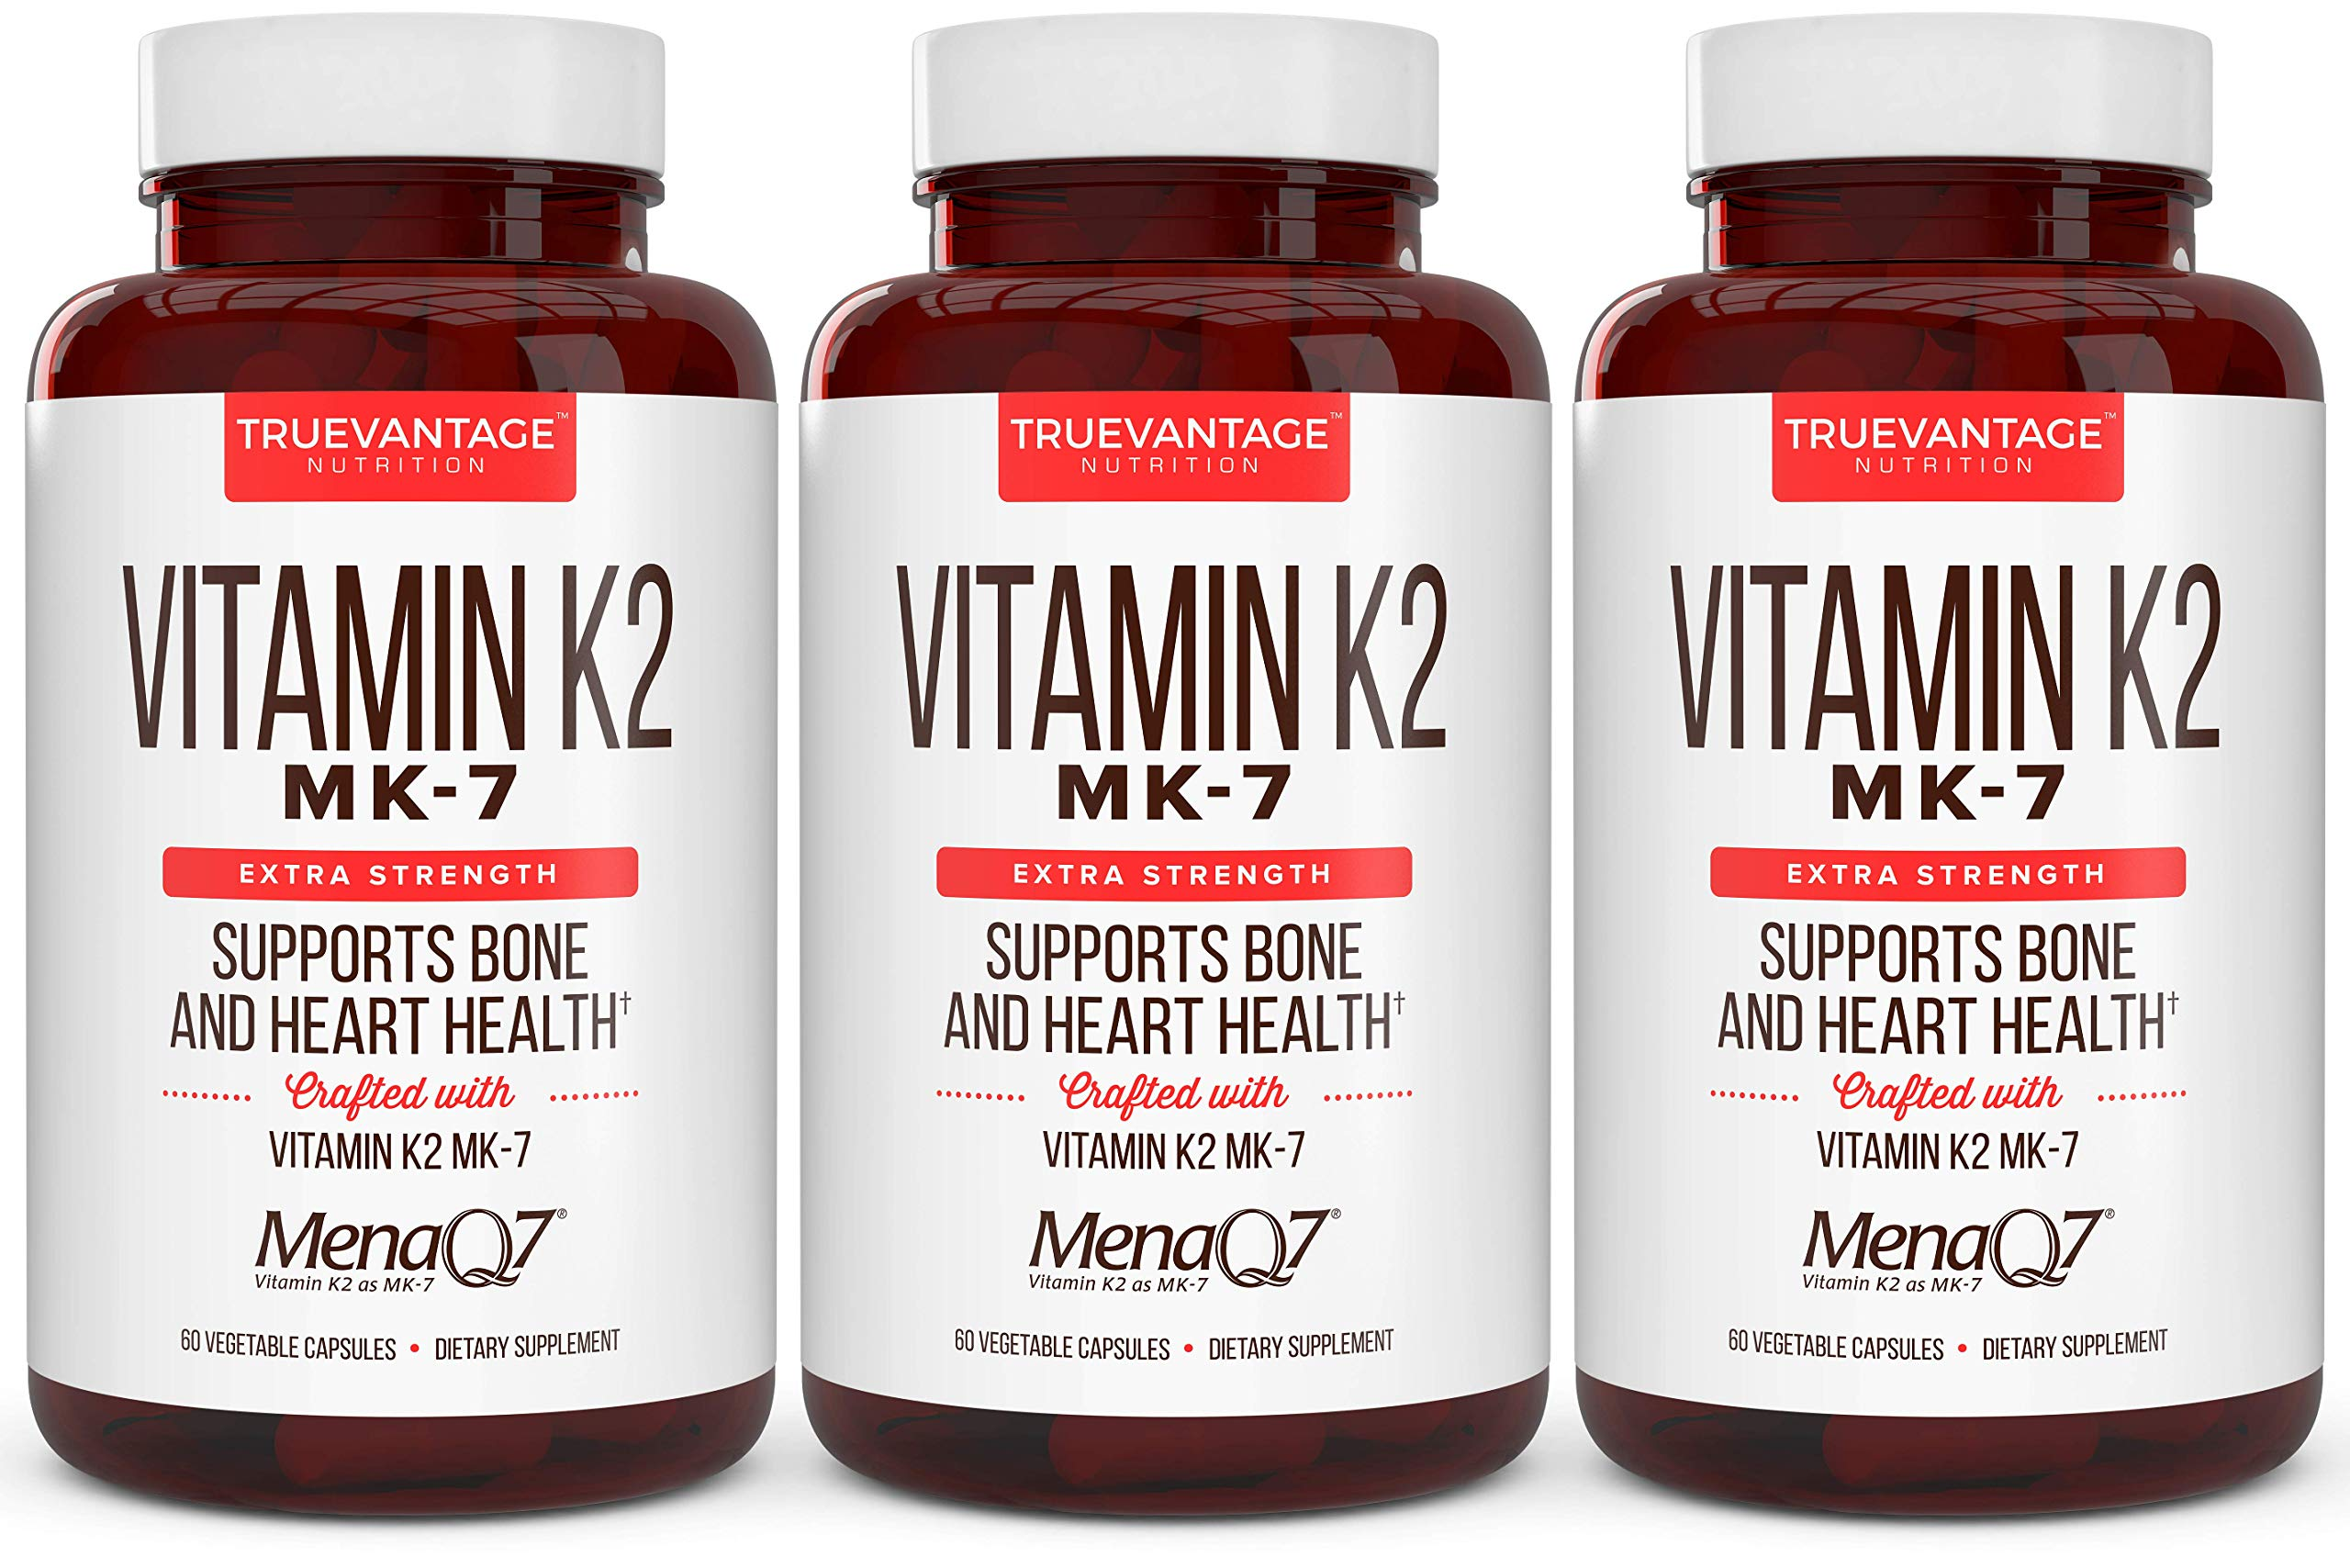 Extra Strength Vitamin K2 Supplement 180mcg - Vitamin k2 Supplement Supports Bone & Heart Health for Cardiovascular Calcium Absorption - 60 Easy to Swallow Vegan caps of Vitamin K2 MK7 (3 Pack)